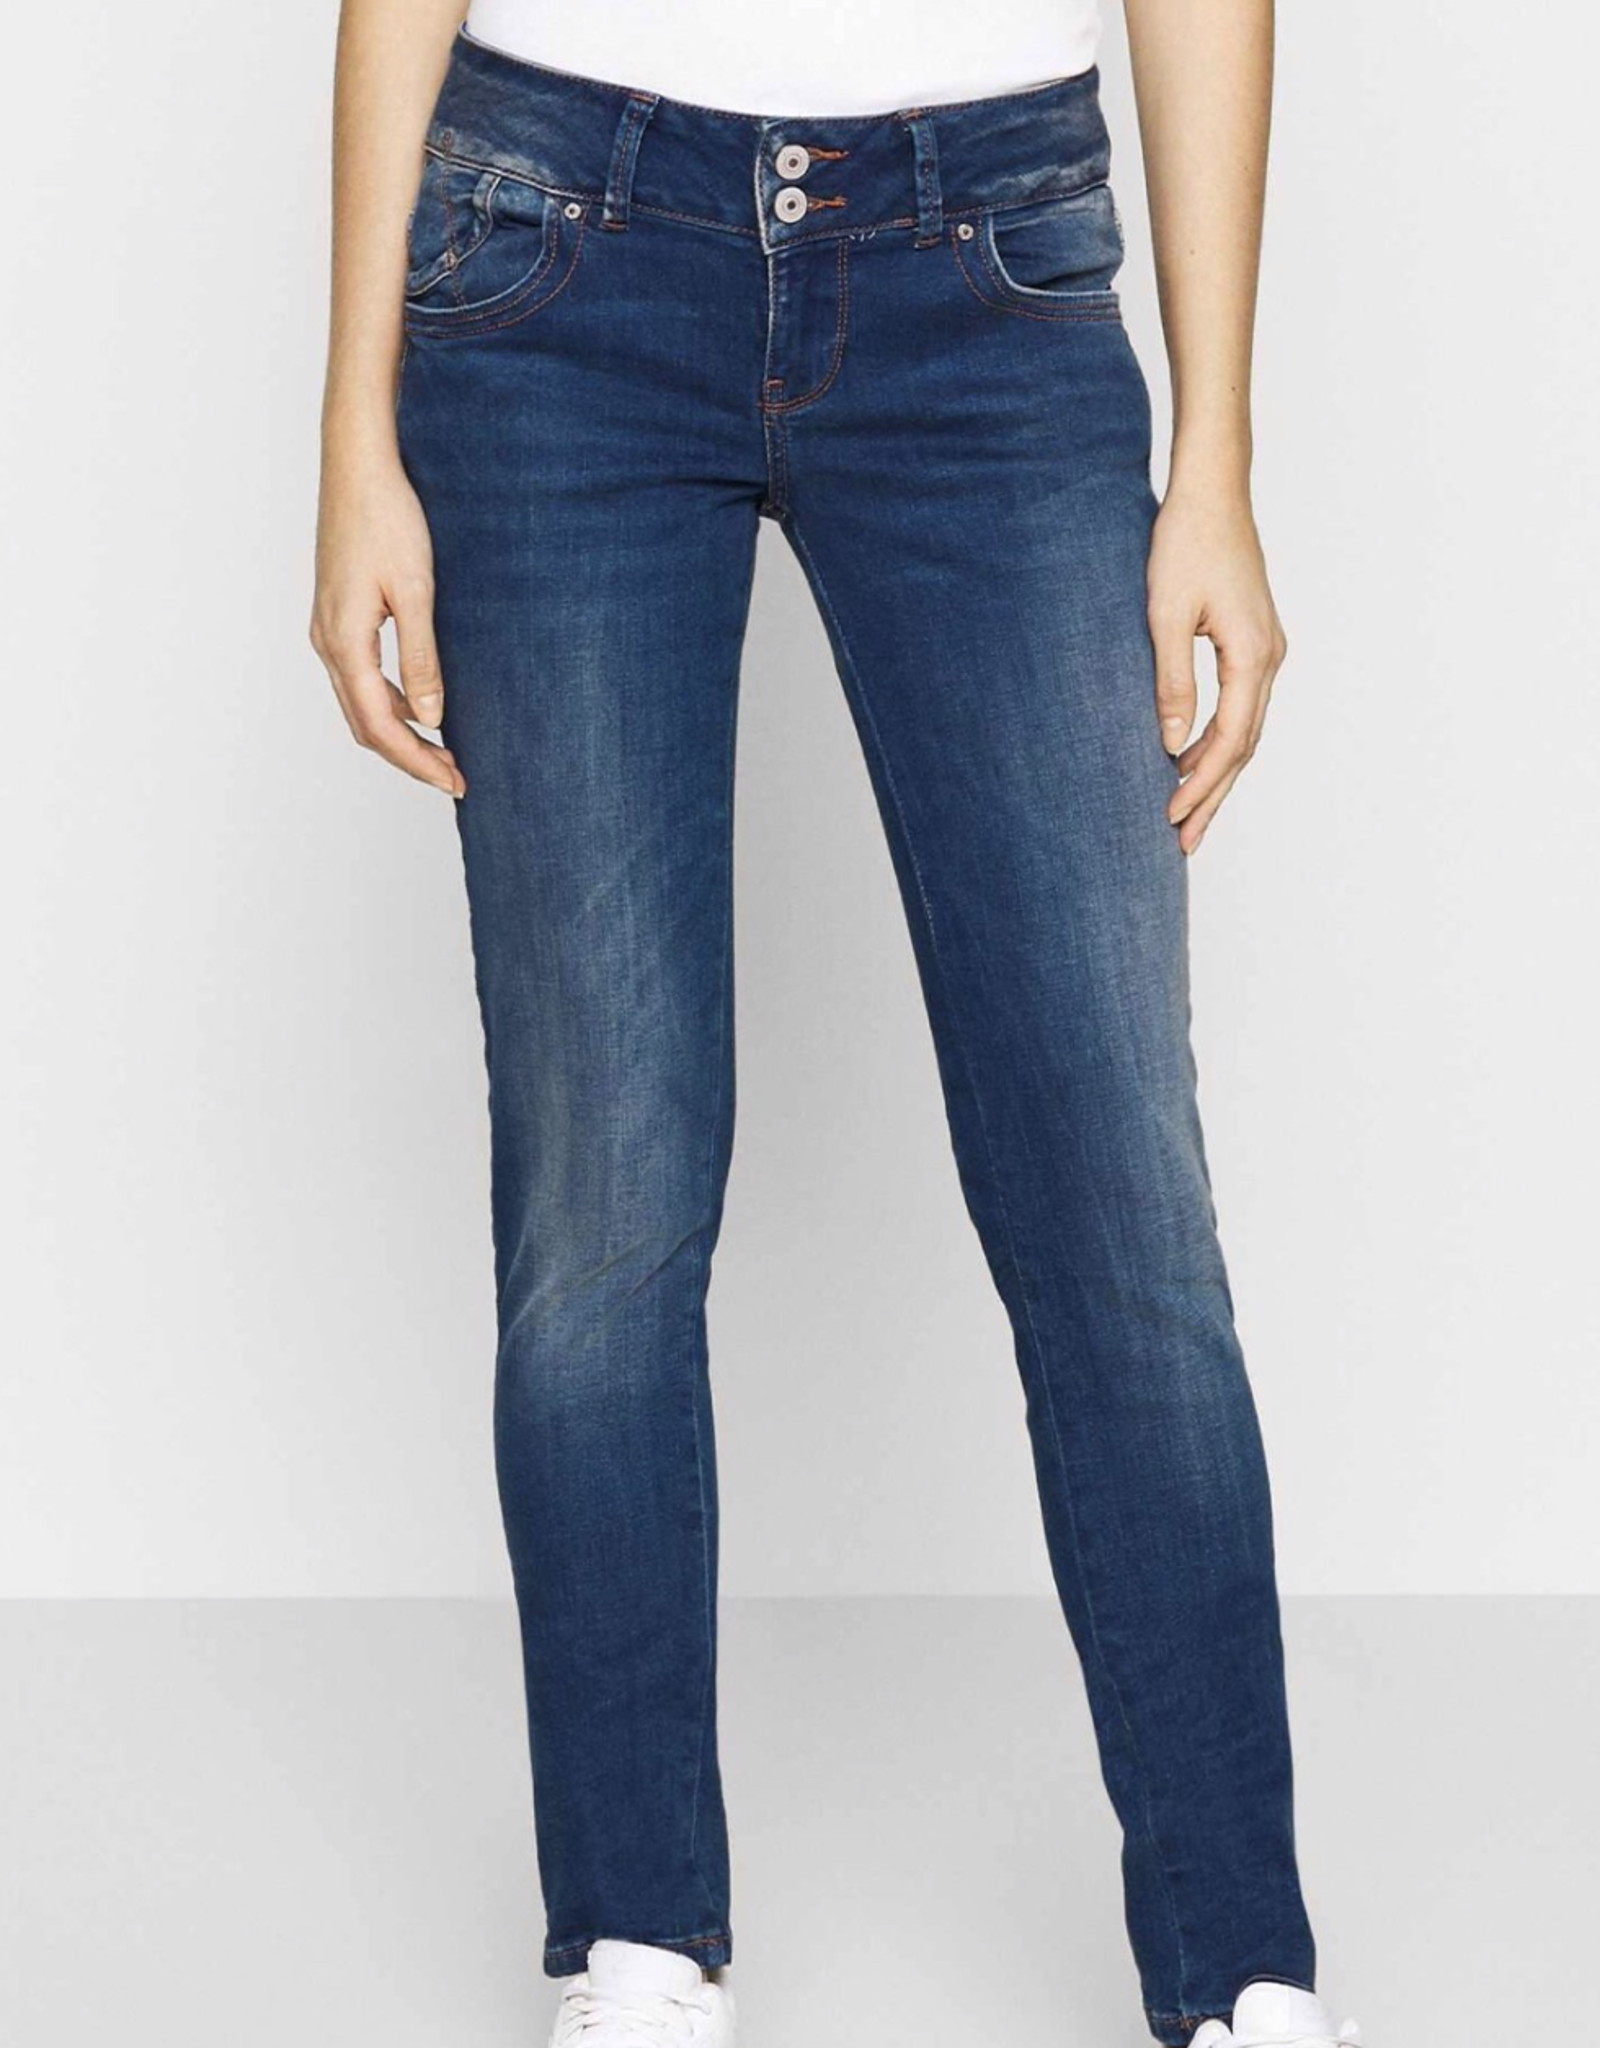 LTB JEANS 5065 MOLLY LTB JEANS